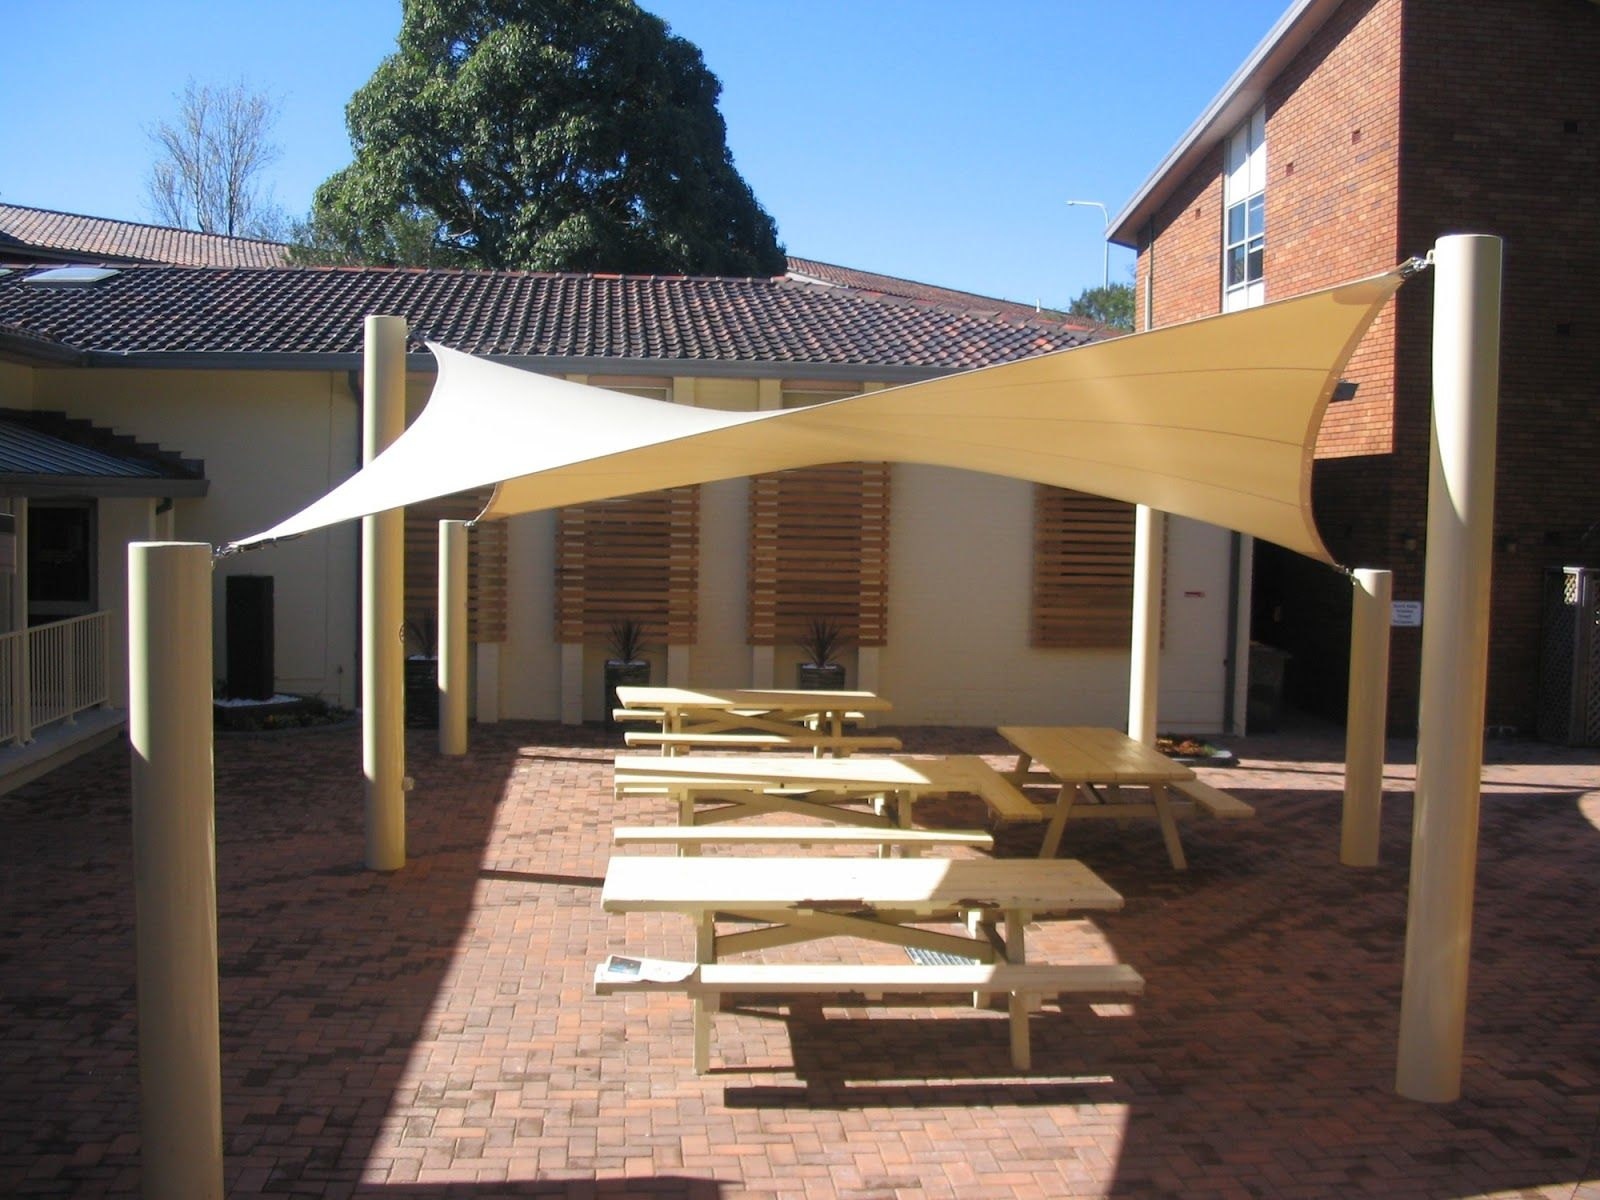 Pool Shade Design For Your Lovely Swimming Inspirations Inspiring Rectangle Canvas Awning Over White Relaxing Chairs As Well Brick Back